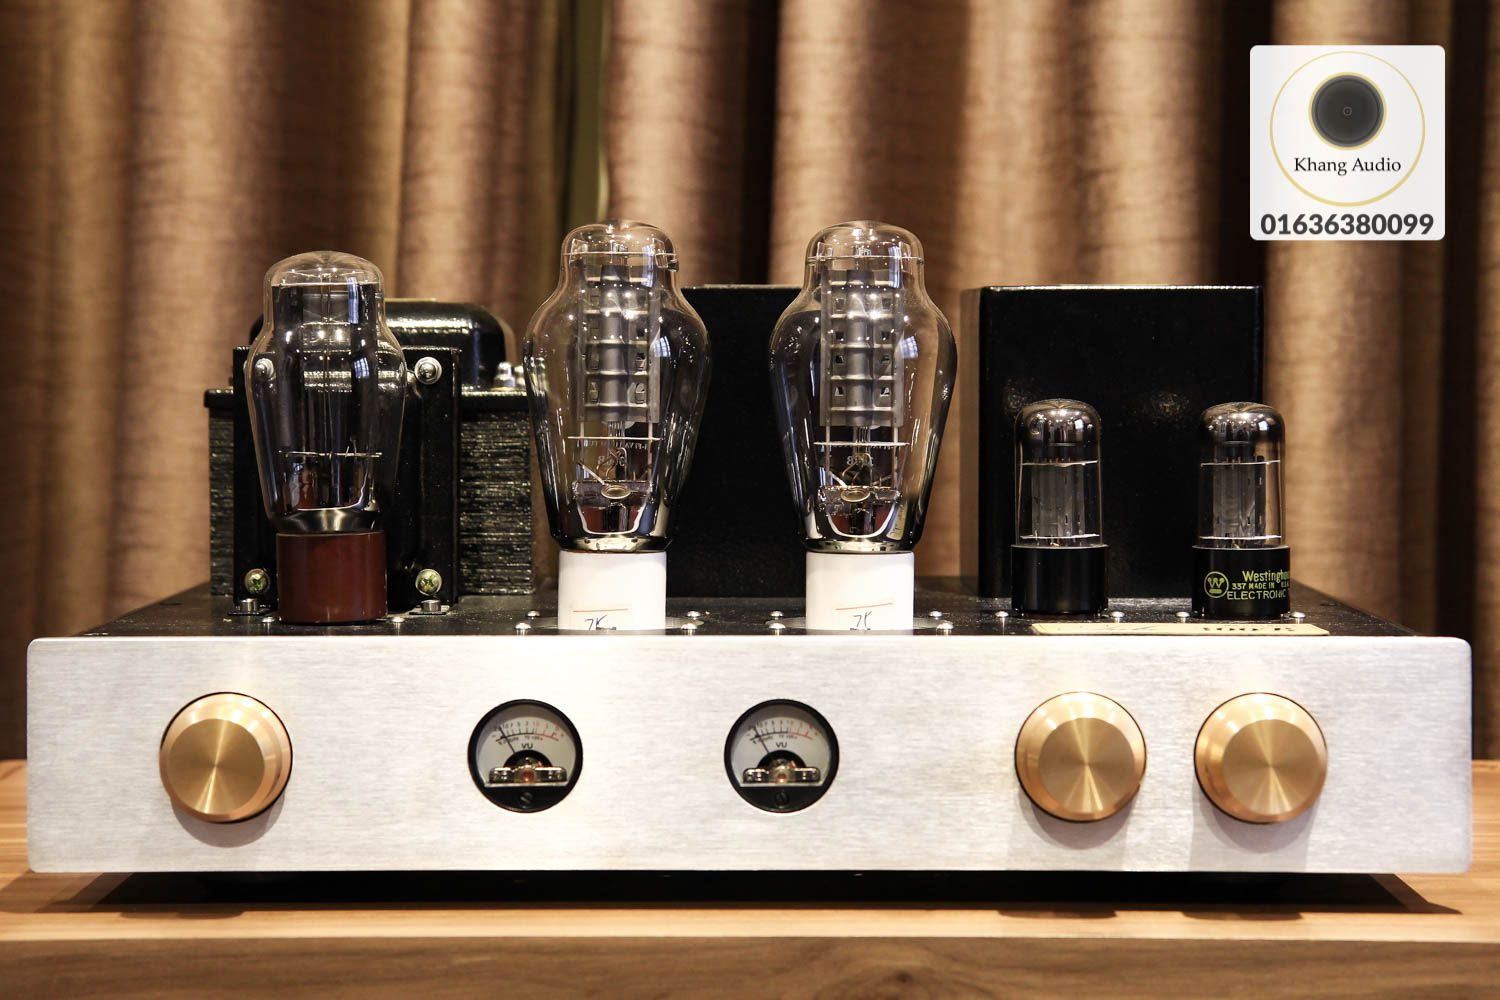 Amply 300B Khang Audio DIY